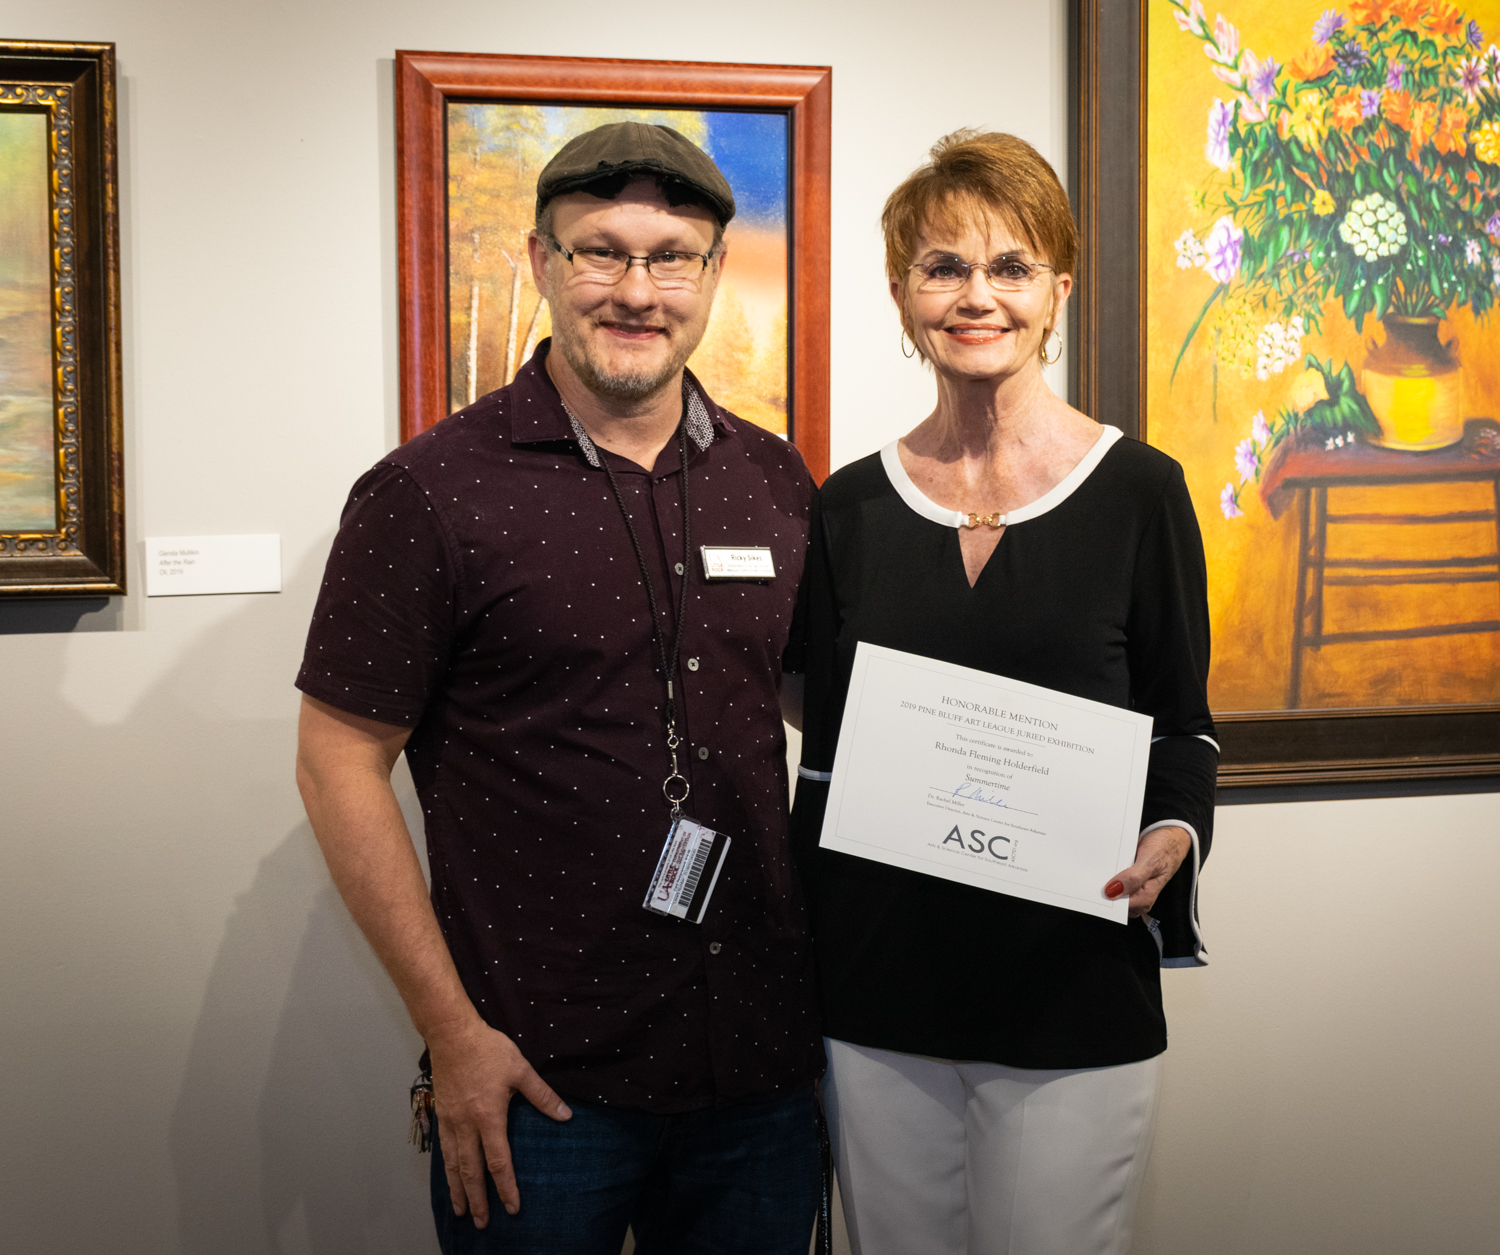 Rhonda Fleming Holderfield (right, with juror Ricky Sikes) was awarded an Honorable Mention for her acrylic painting Summertime.